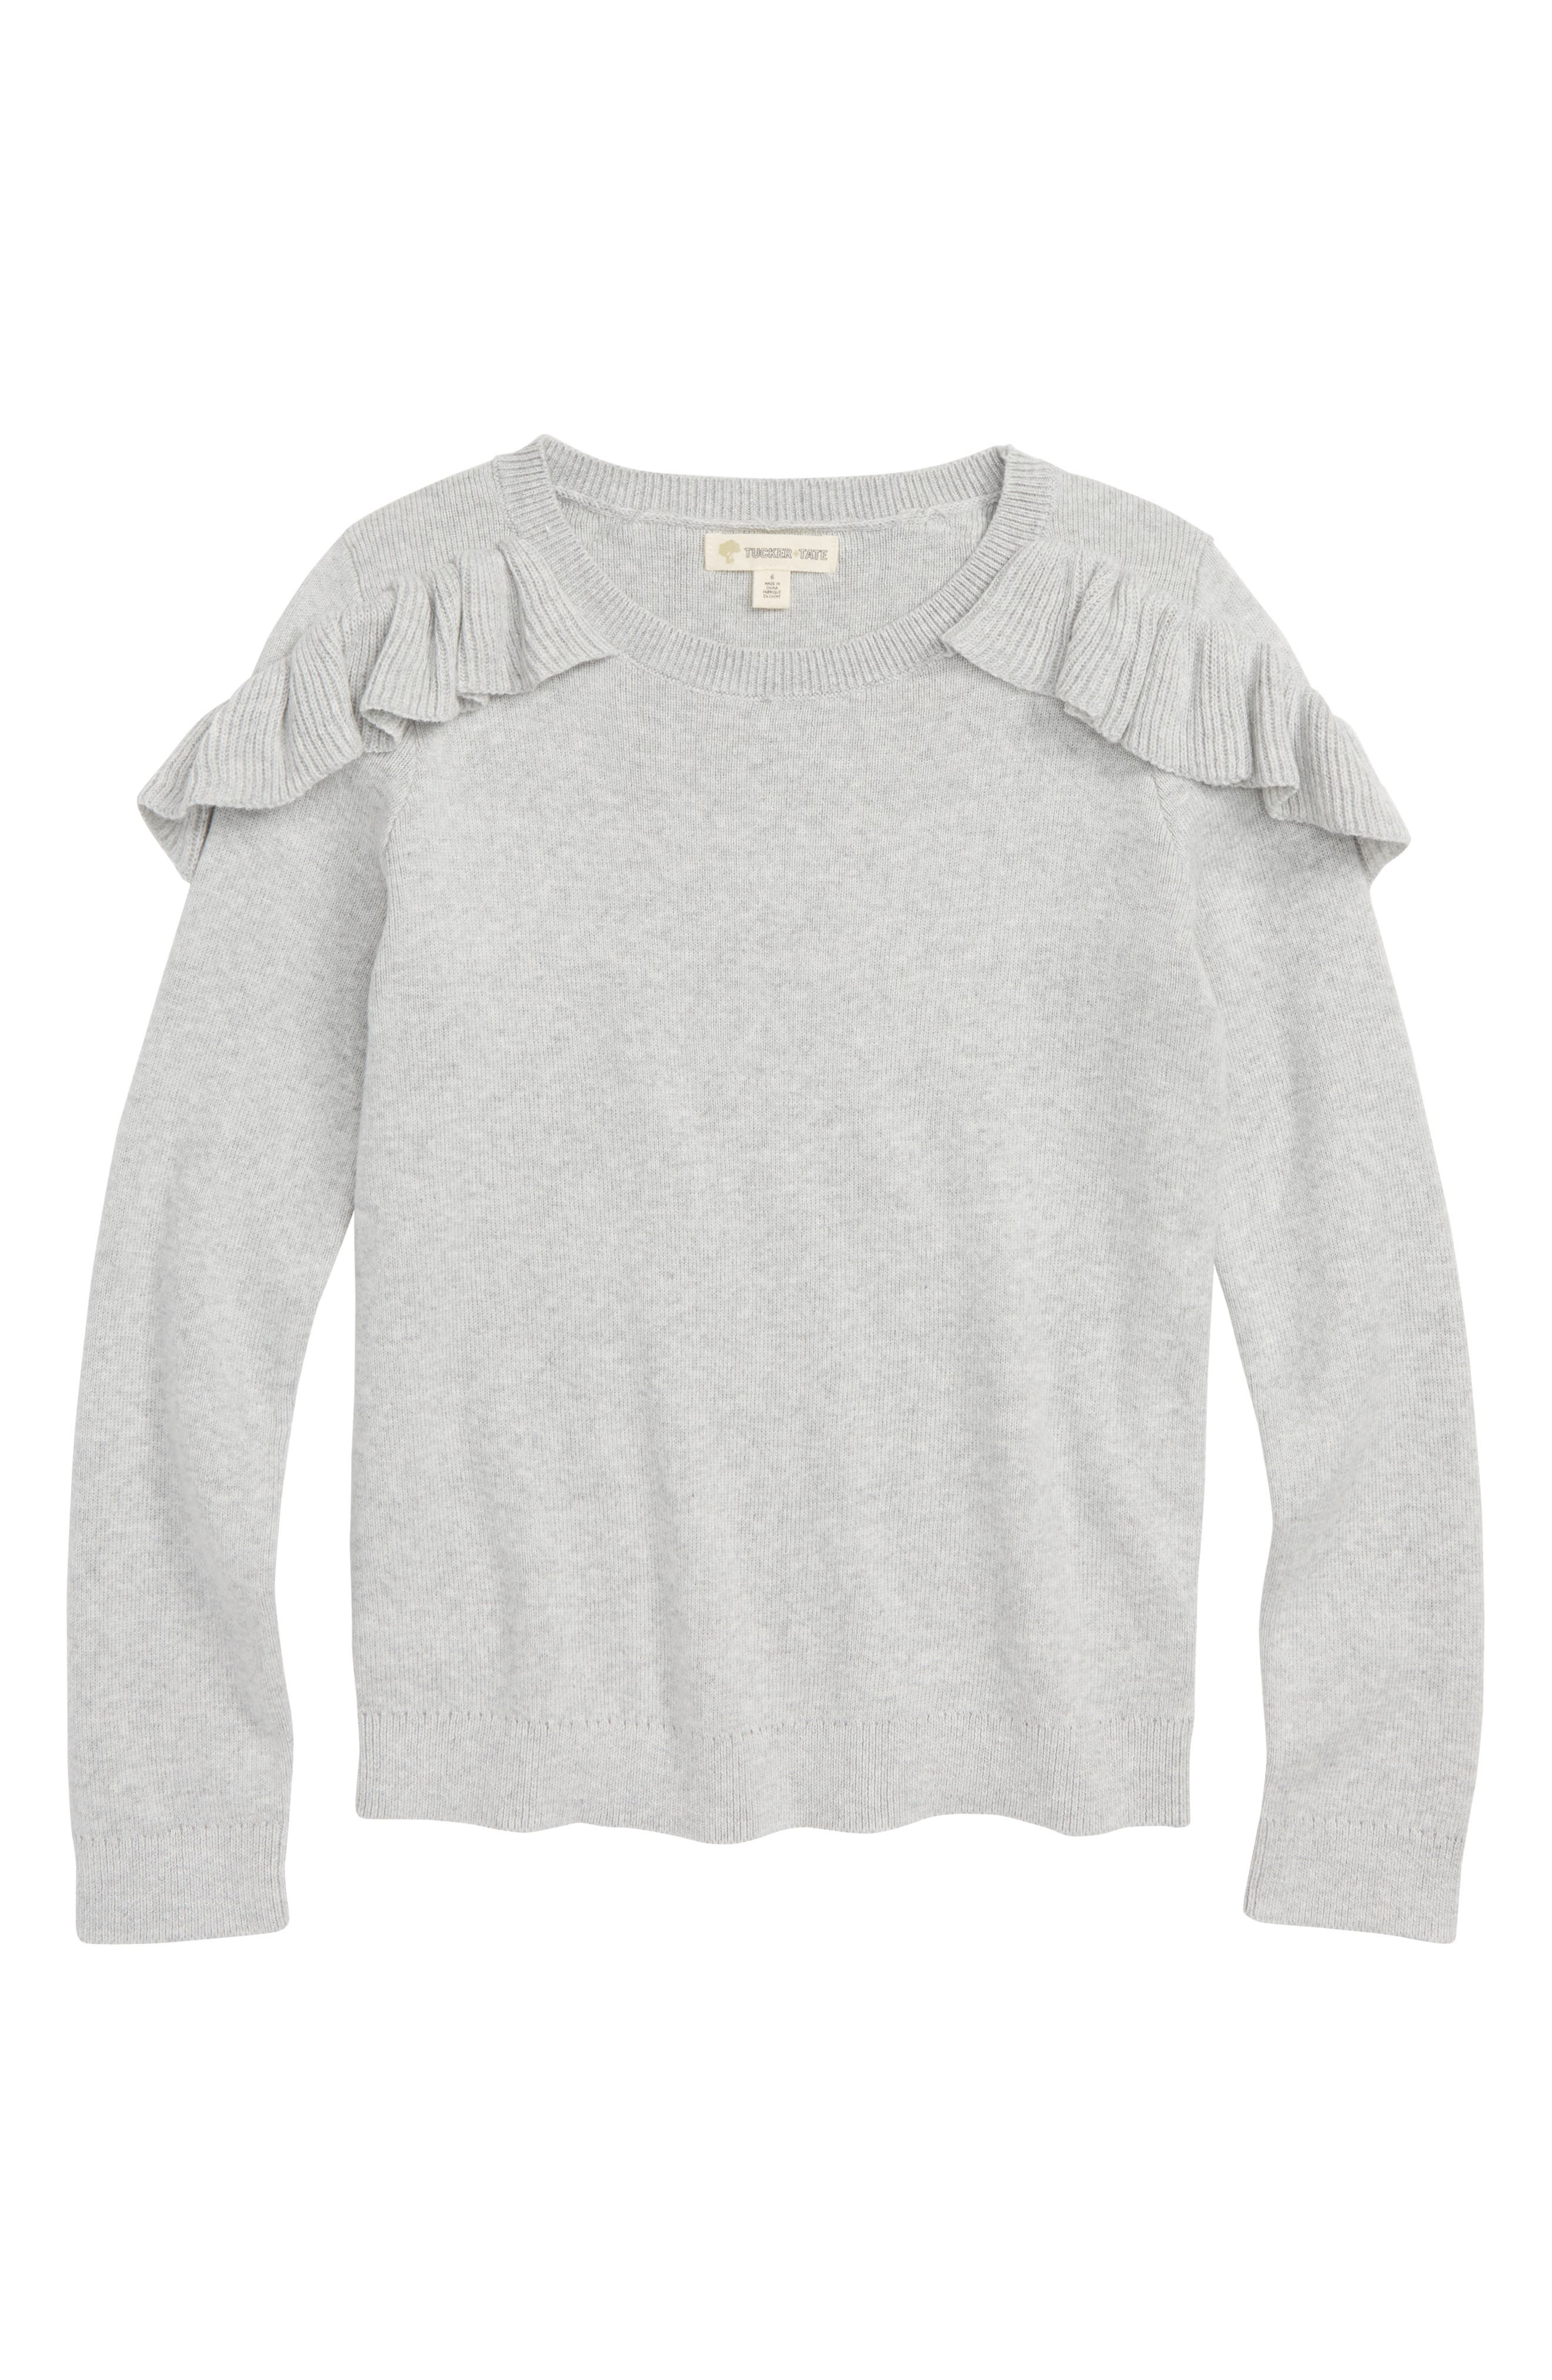 Ruffle Sweater,                             Main thumbnail 1, color,                             GREY ASH HEATHER